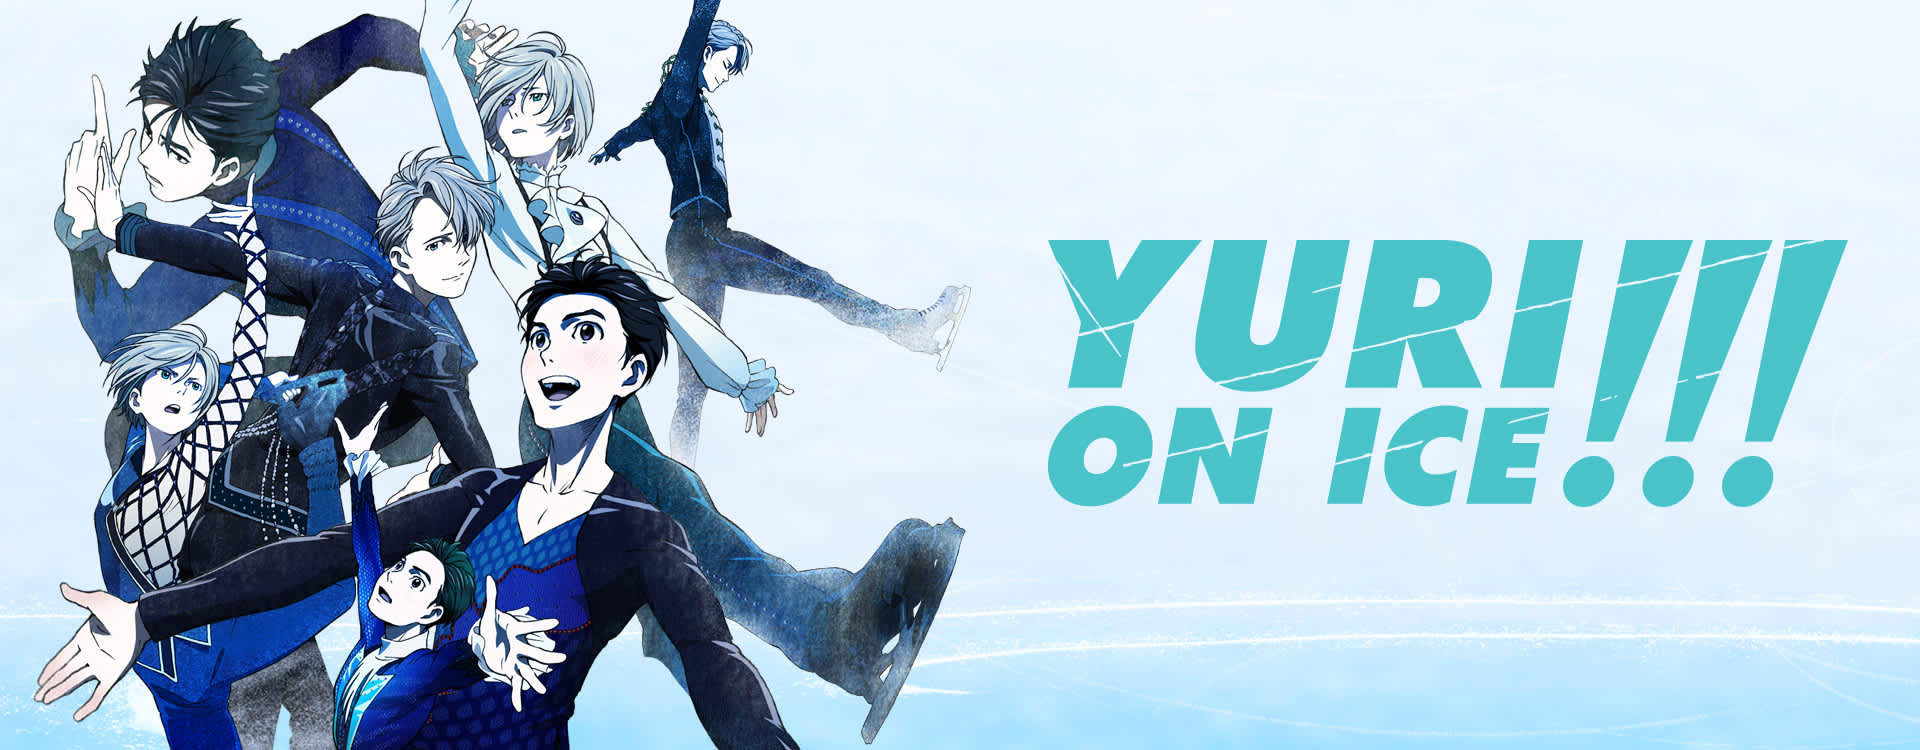 REVIEW – Yuri!!! on Ice